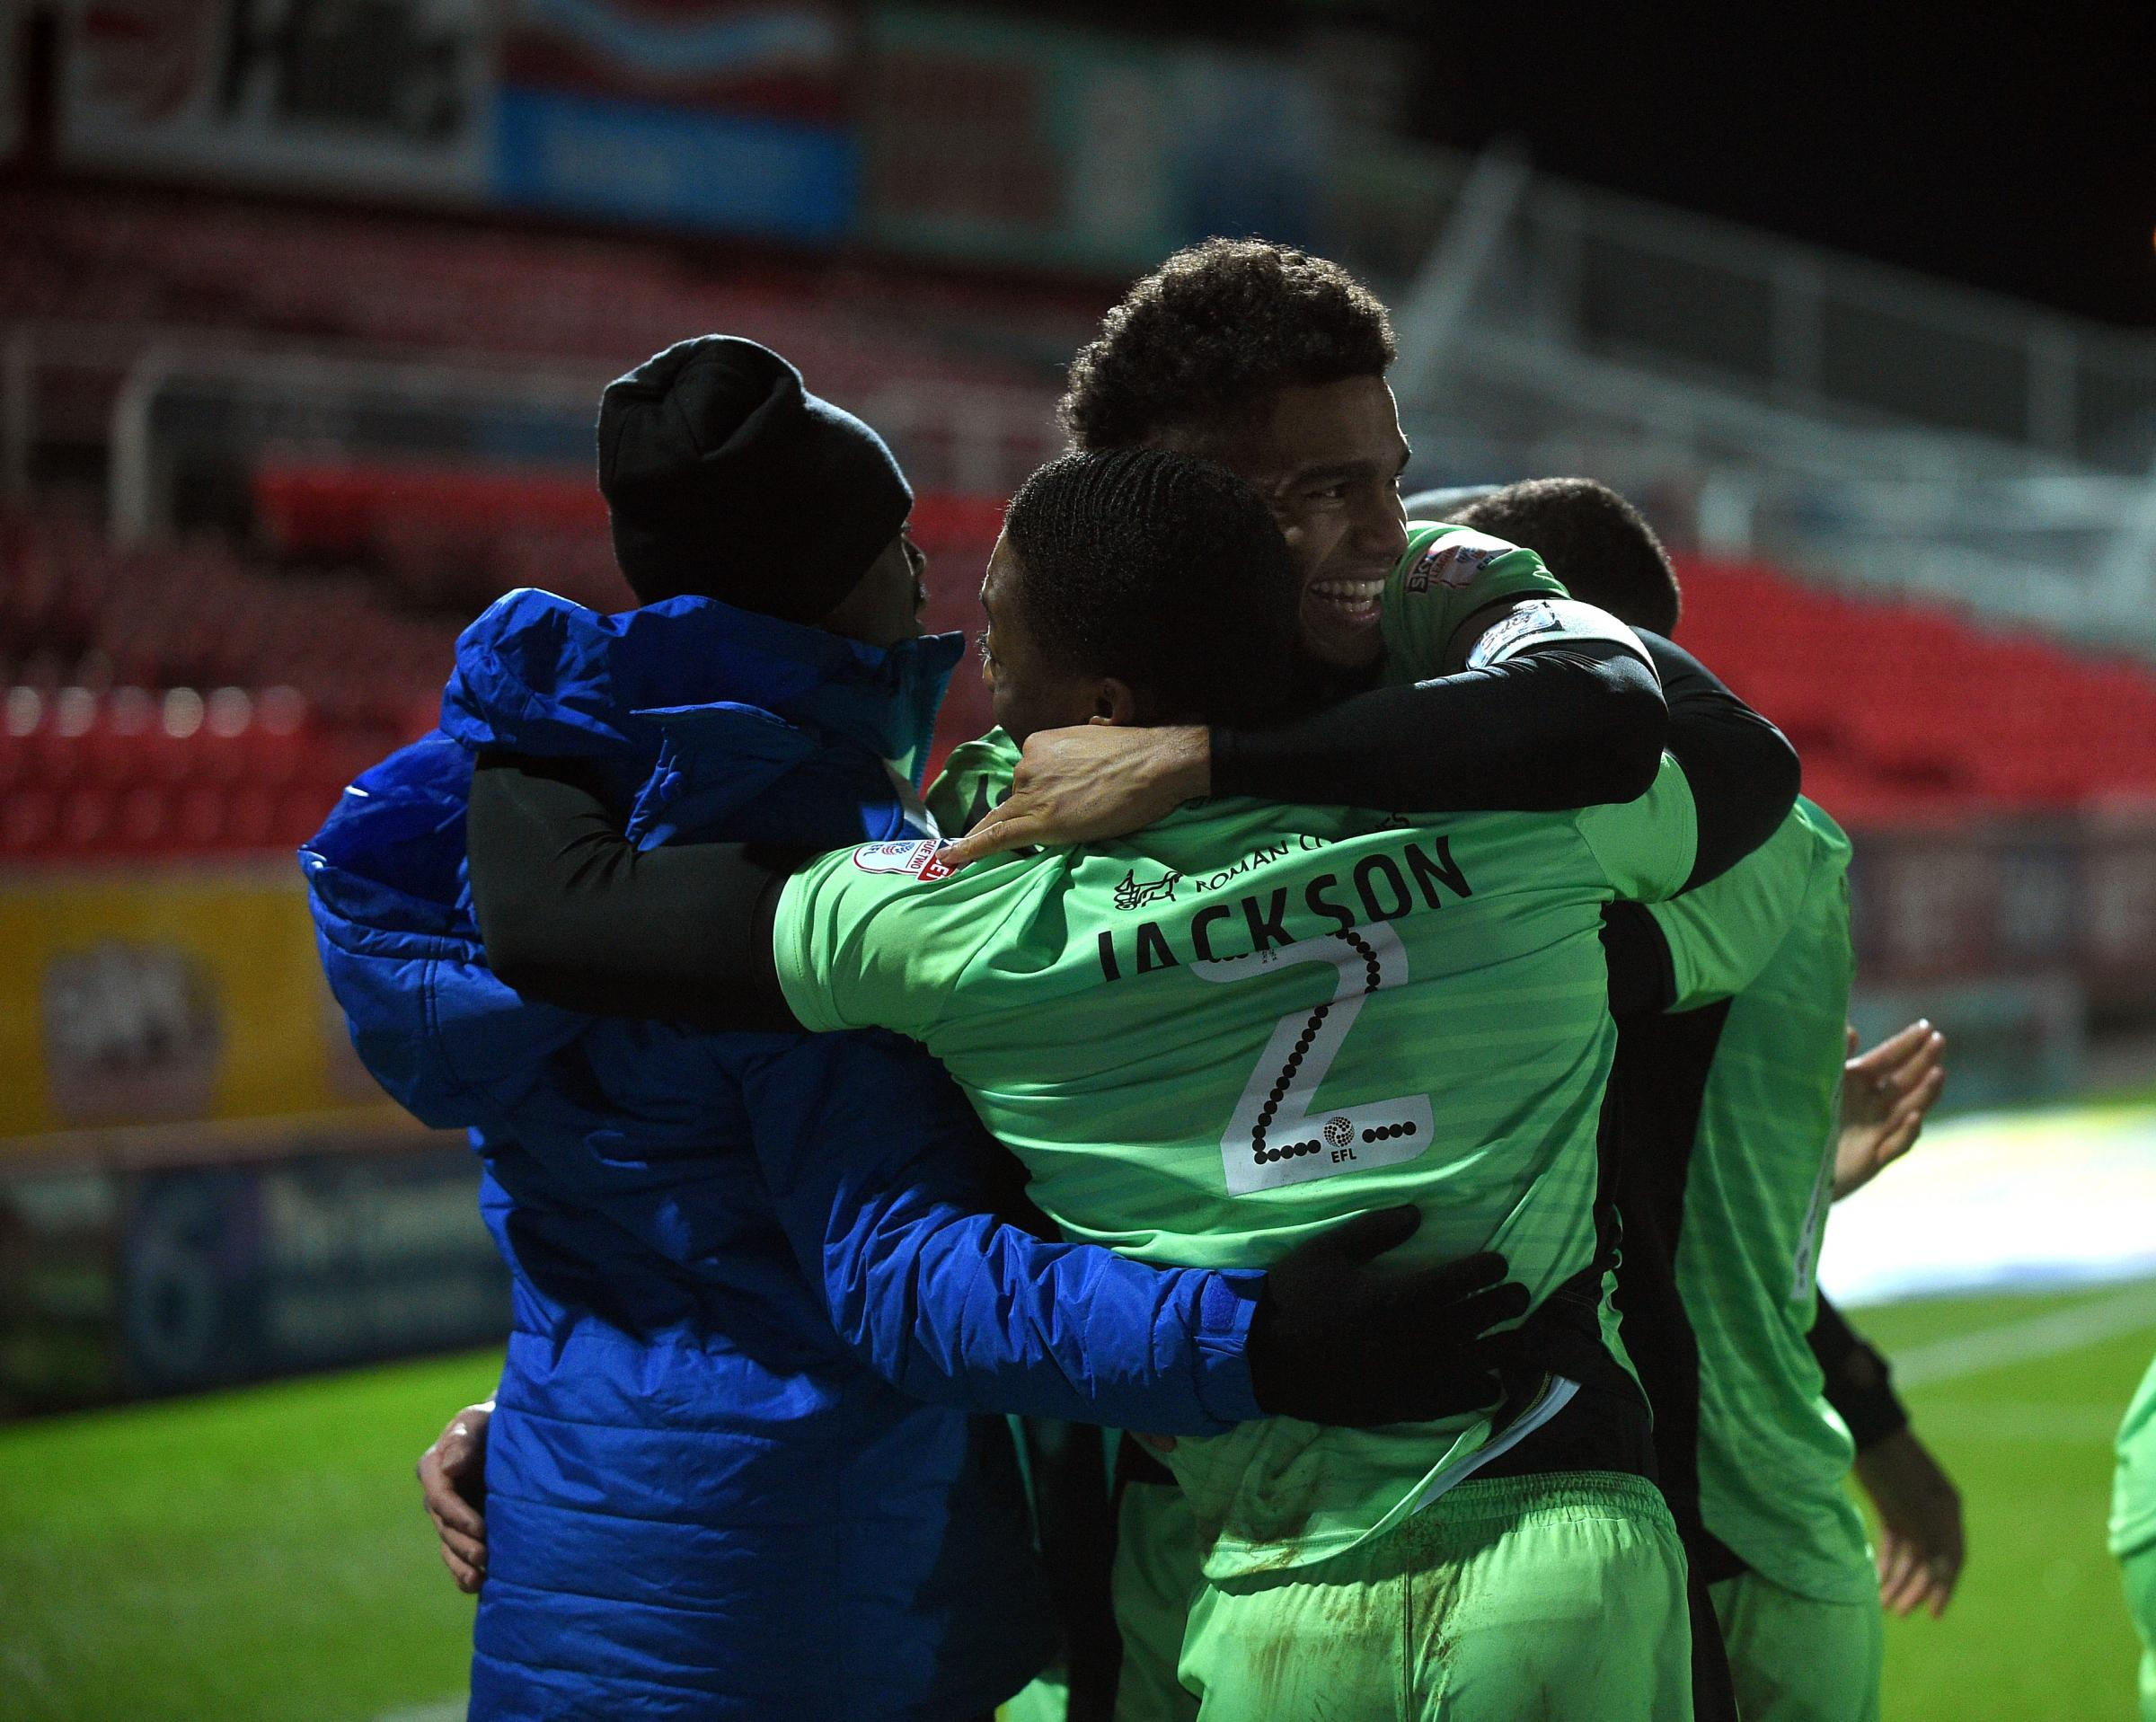 Feel-good factor - Colchester United's players celebrate after their win at Swindon Town Picture: WARREN PAGE